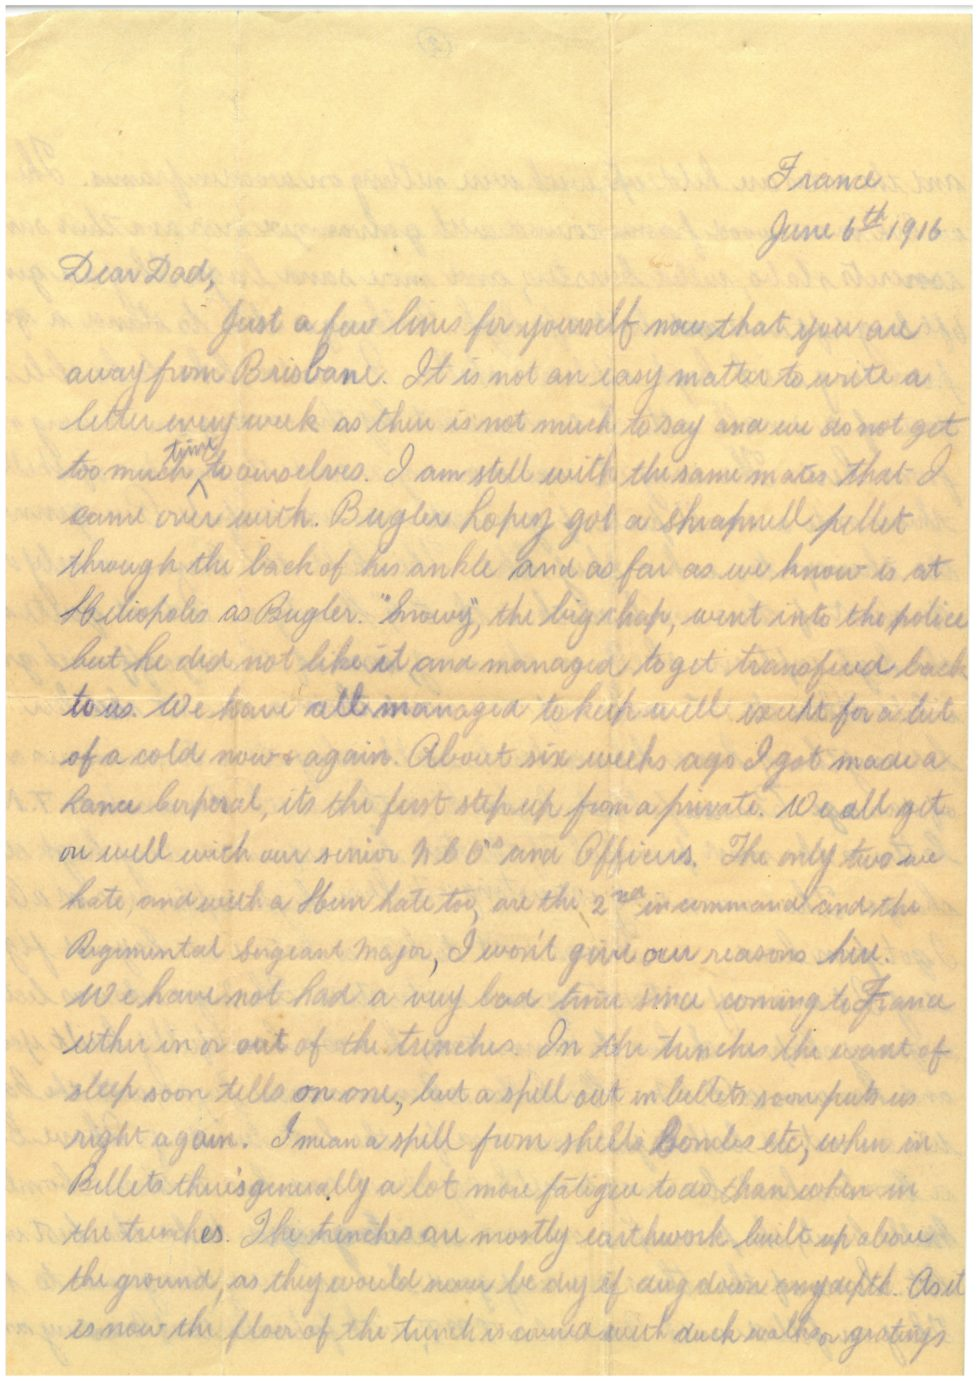 From the Archives: Letters from France